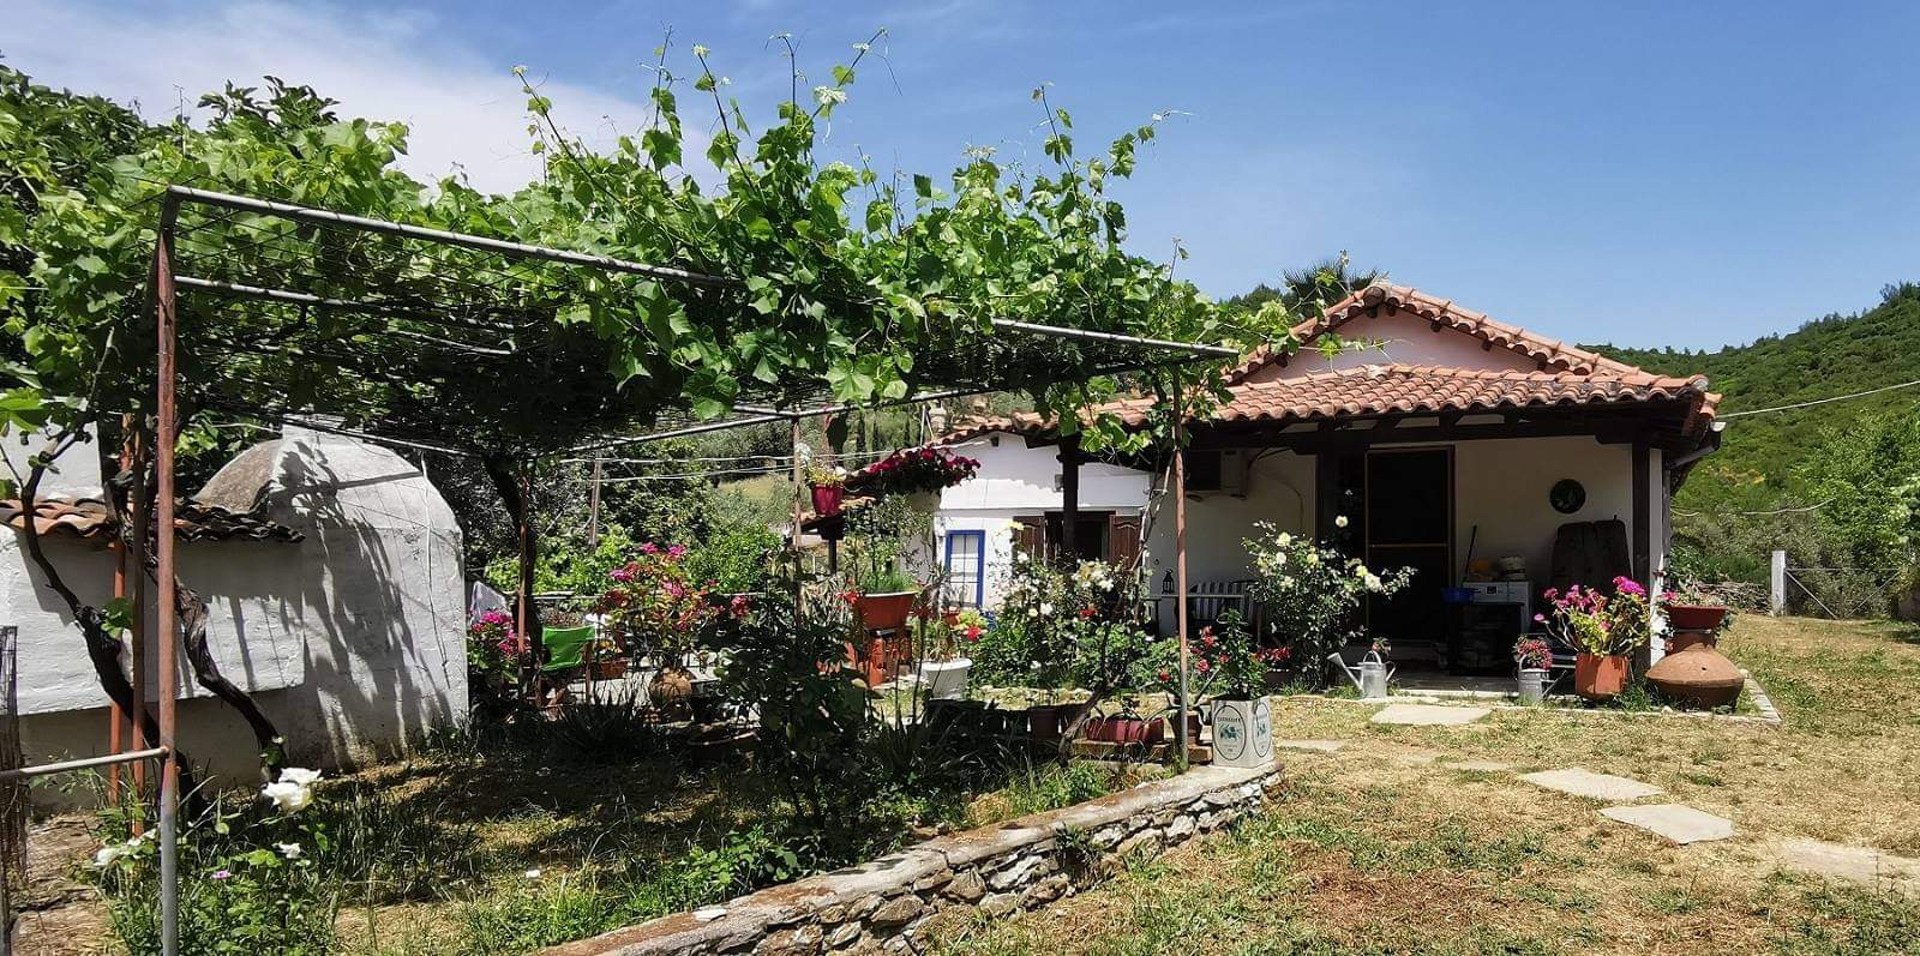 Land 8.726 m² for sale in Troulos with 3 buildings